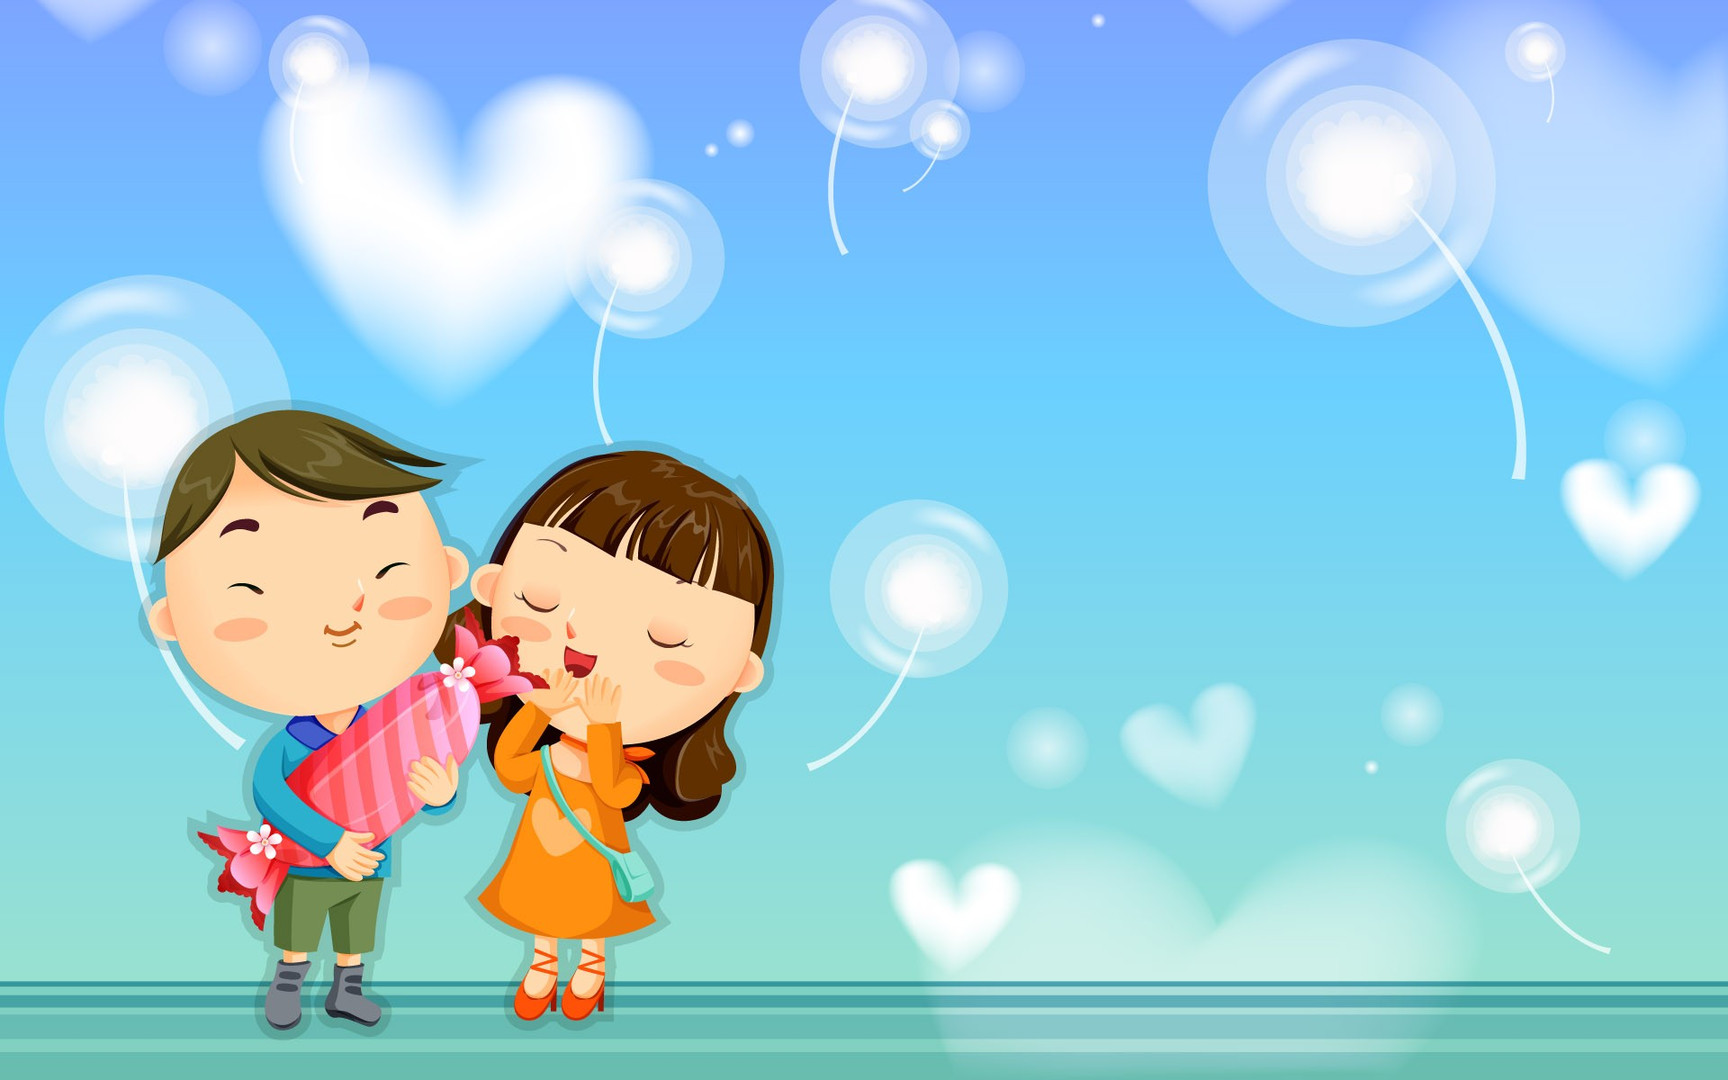 Love Wallpaper For cartoon : cartoon Love Wallpapers - Wallpaper, High Definition, High Quality, Widescreen